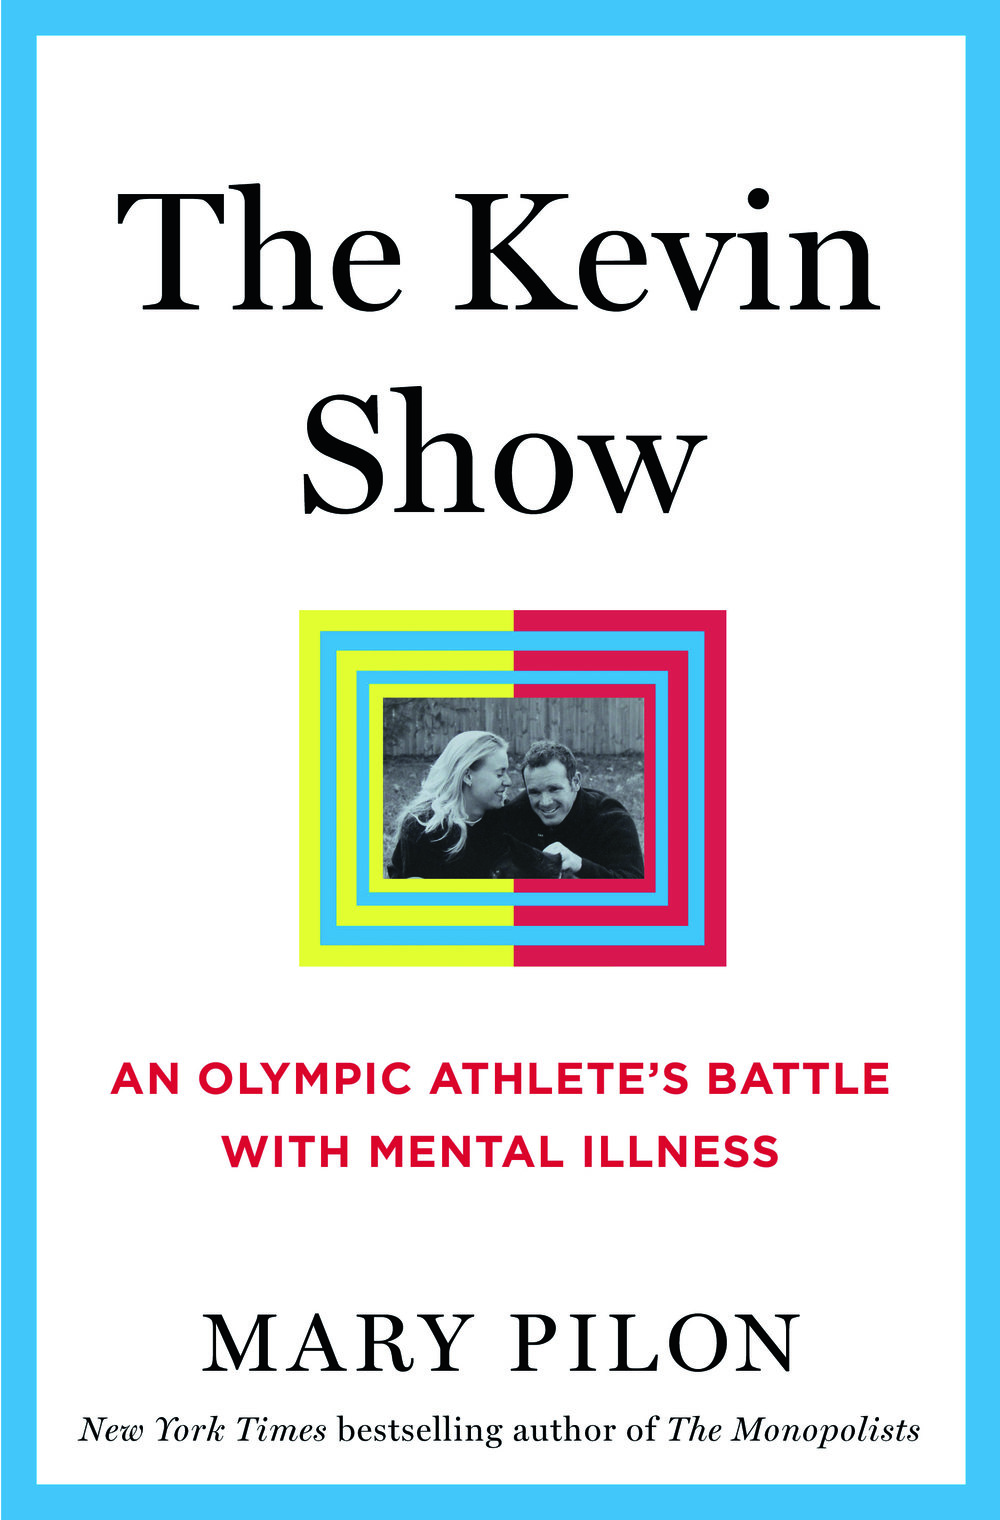 The Kevin Show Cover